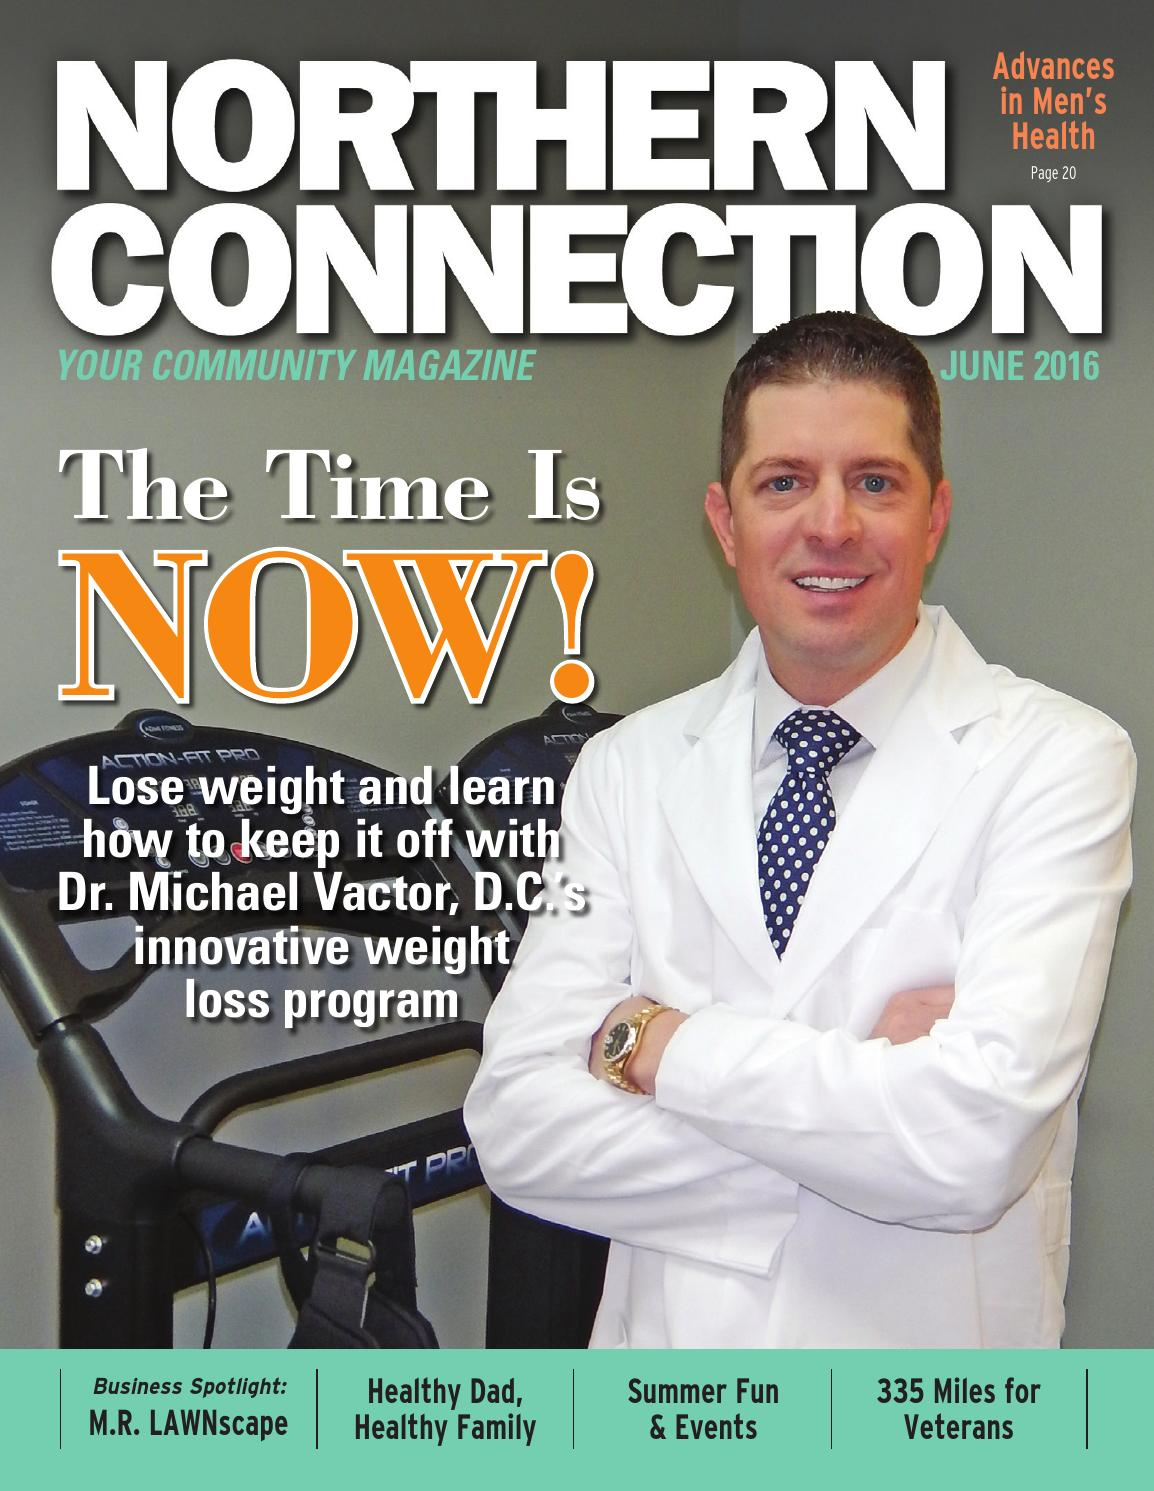 The florida weight loss surgical center triage will likely